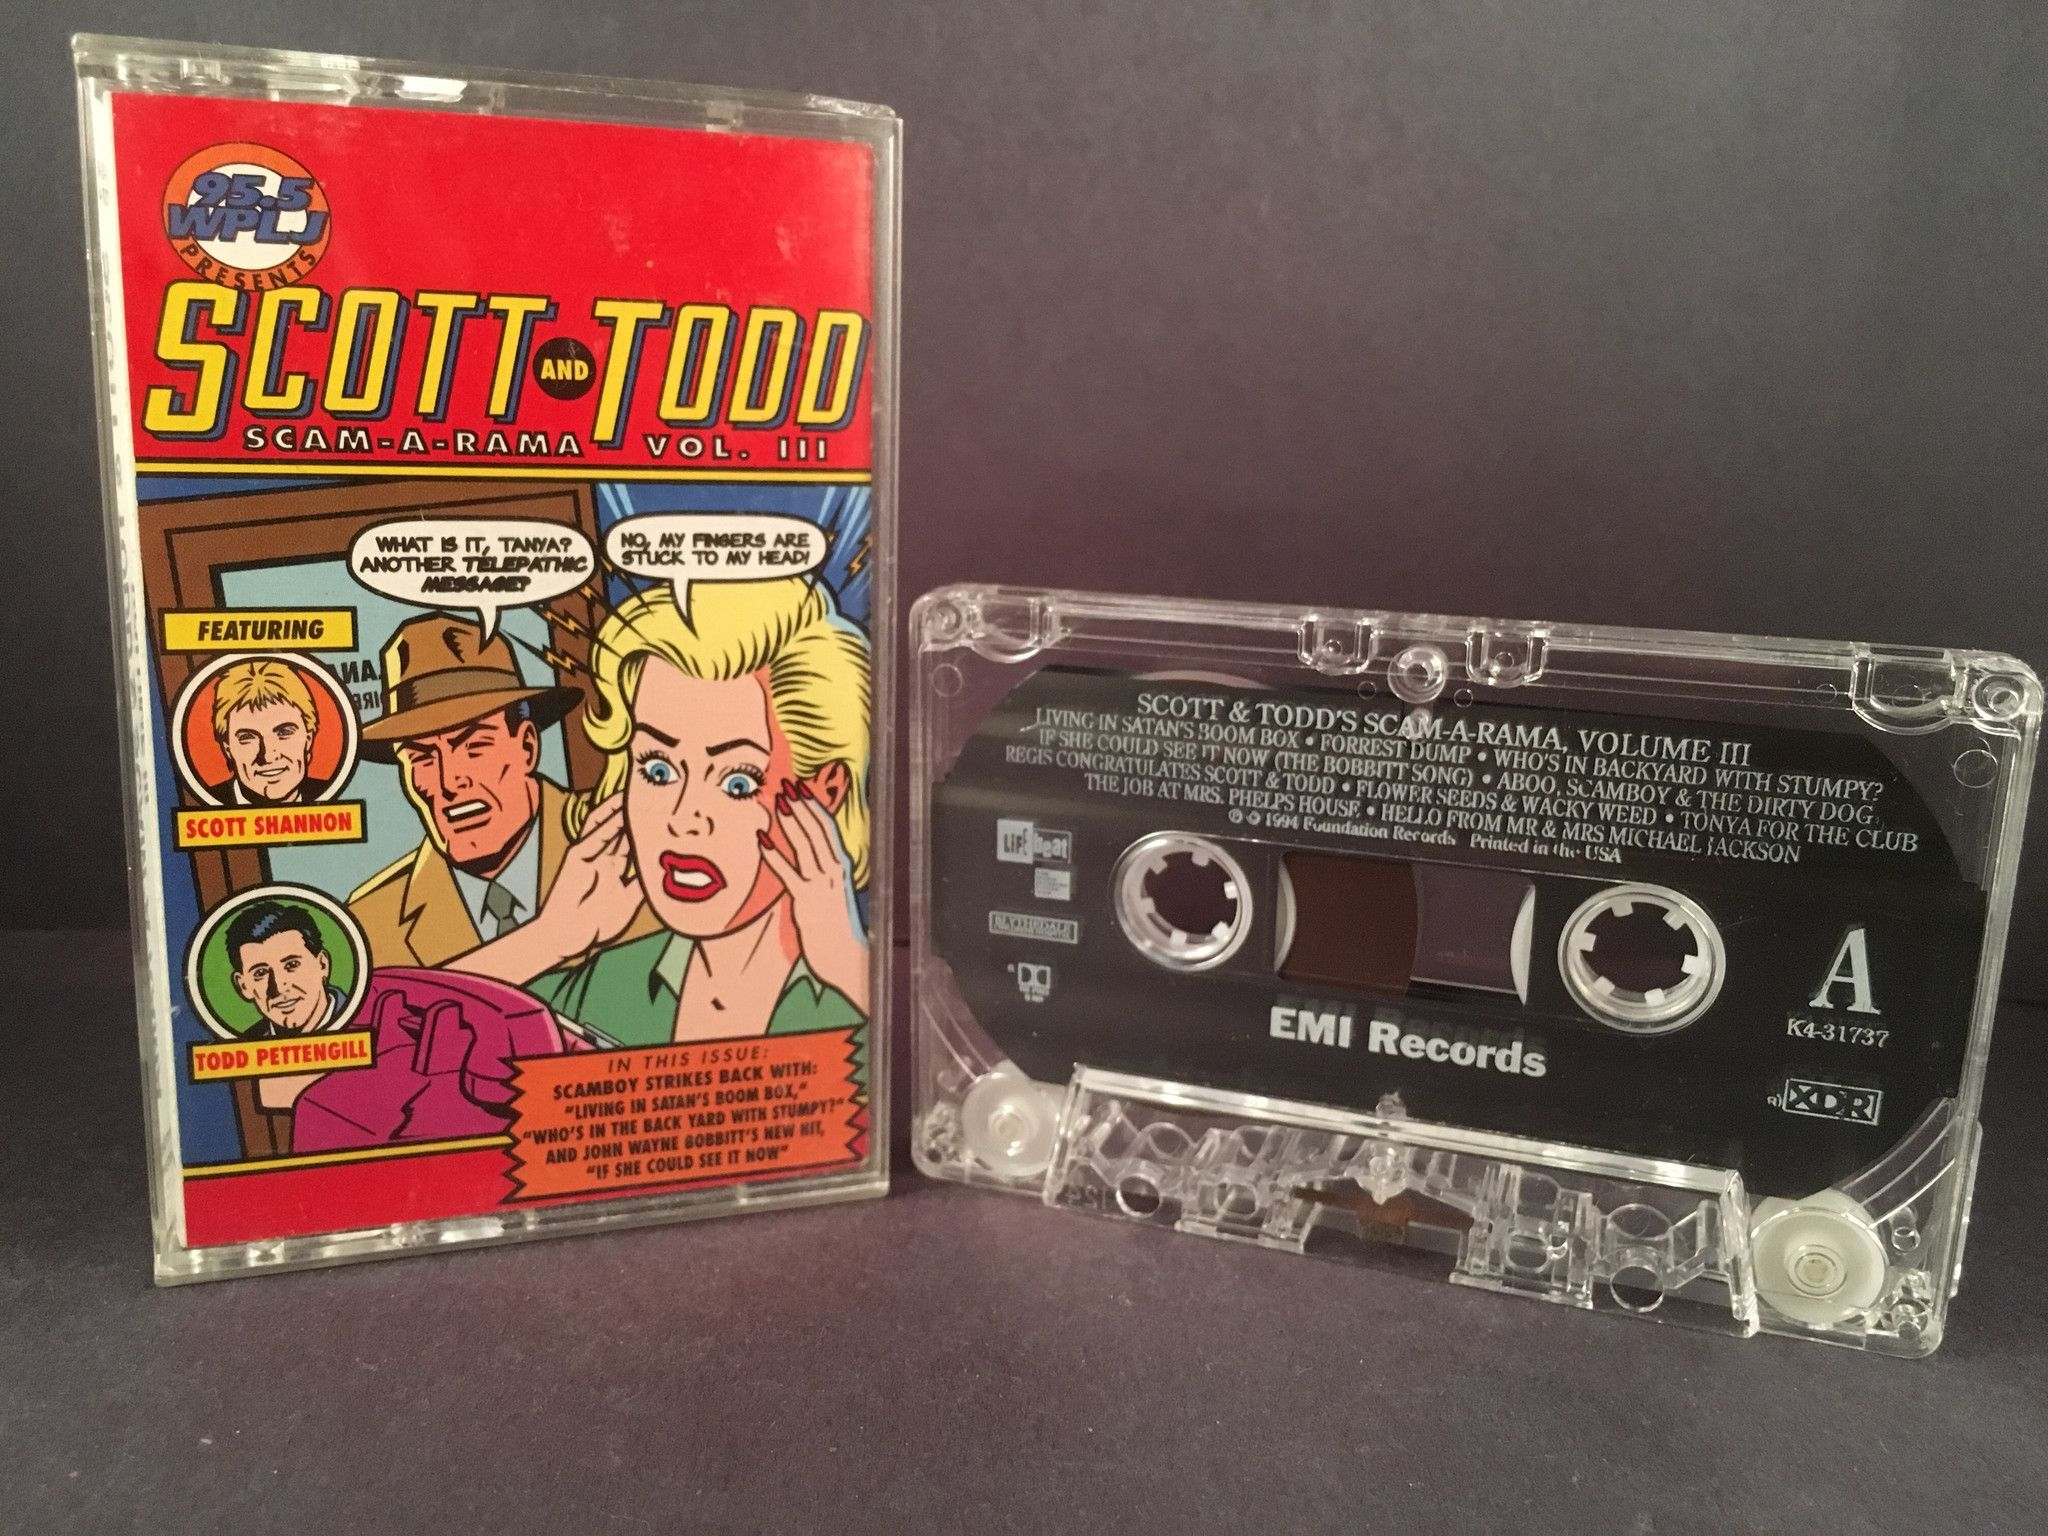 scott u0026 todd scam a rama cassette radio 95 5 plj comedy products